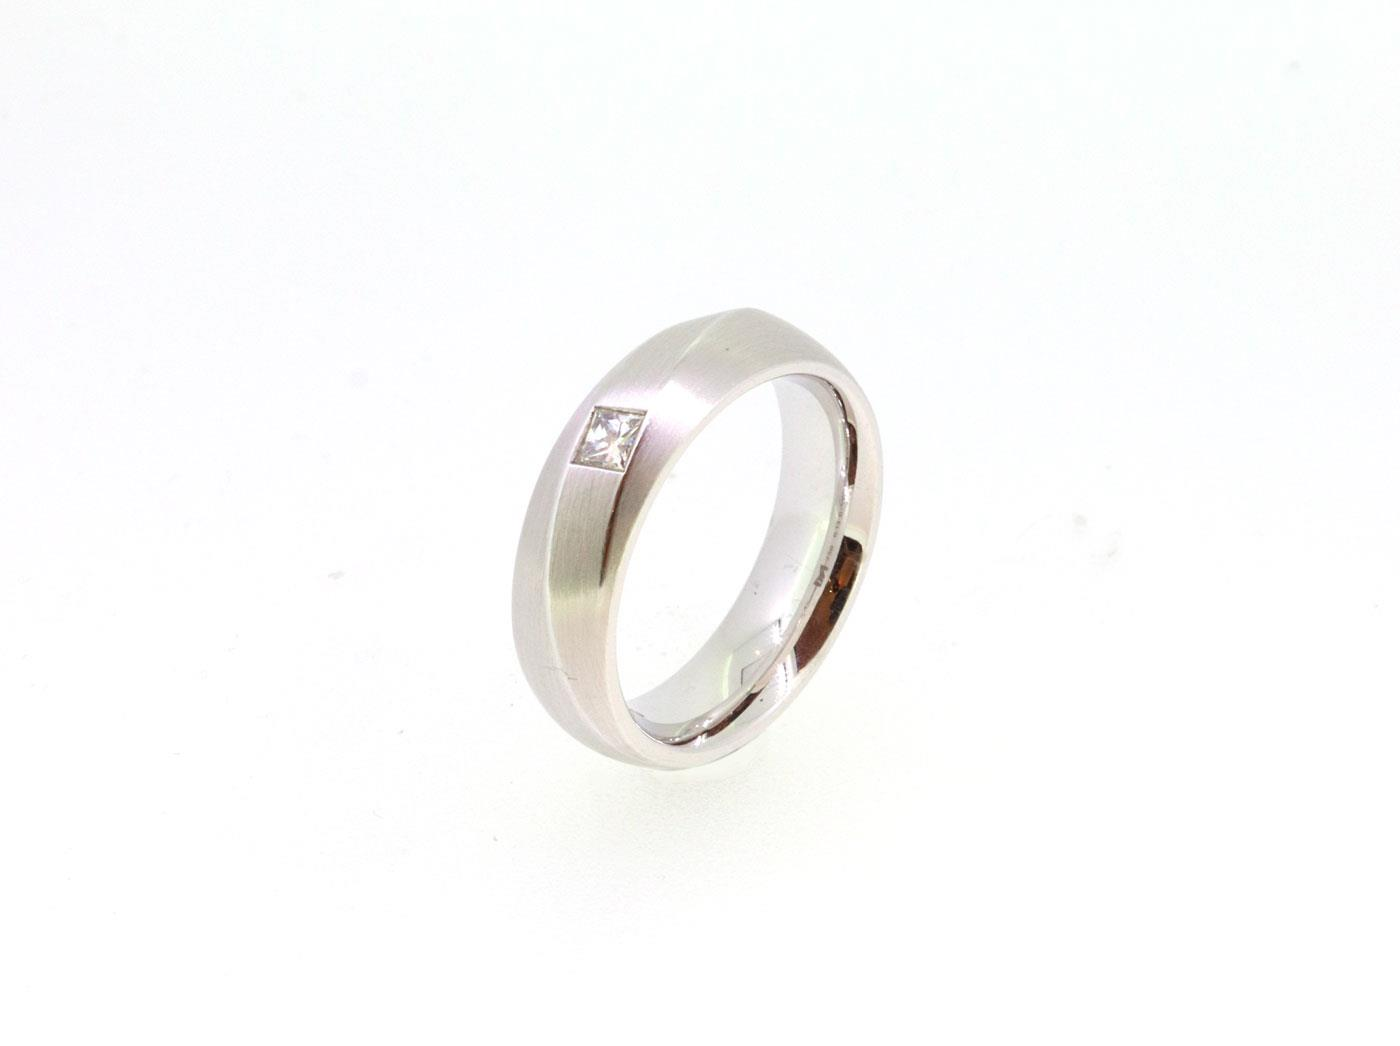 Ring 0,13ct Twinset 18ct Weißgold - Meister - 12.8753.00